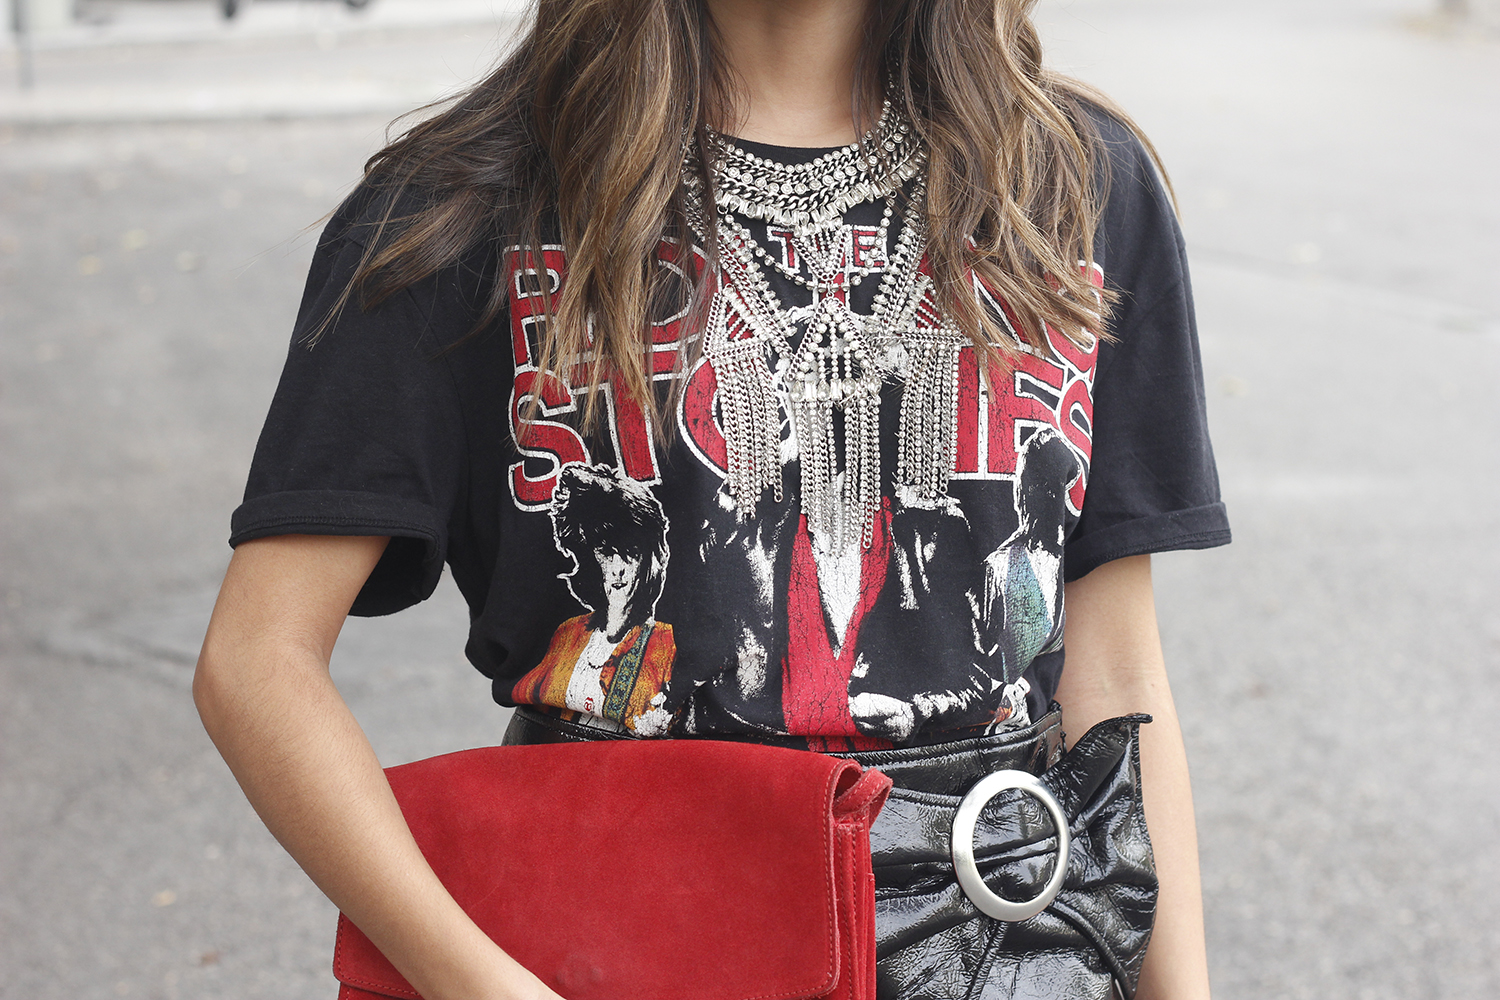 patent leather skirt t-shirt necklace heels leather jacket outfit style fashion12